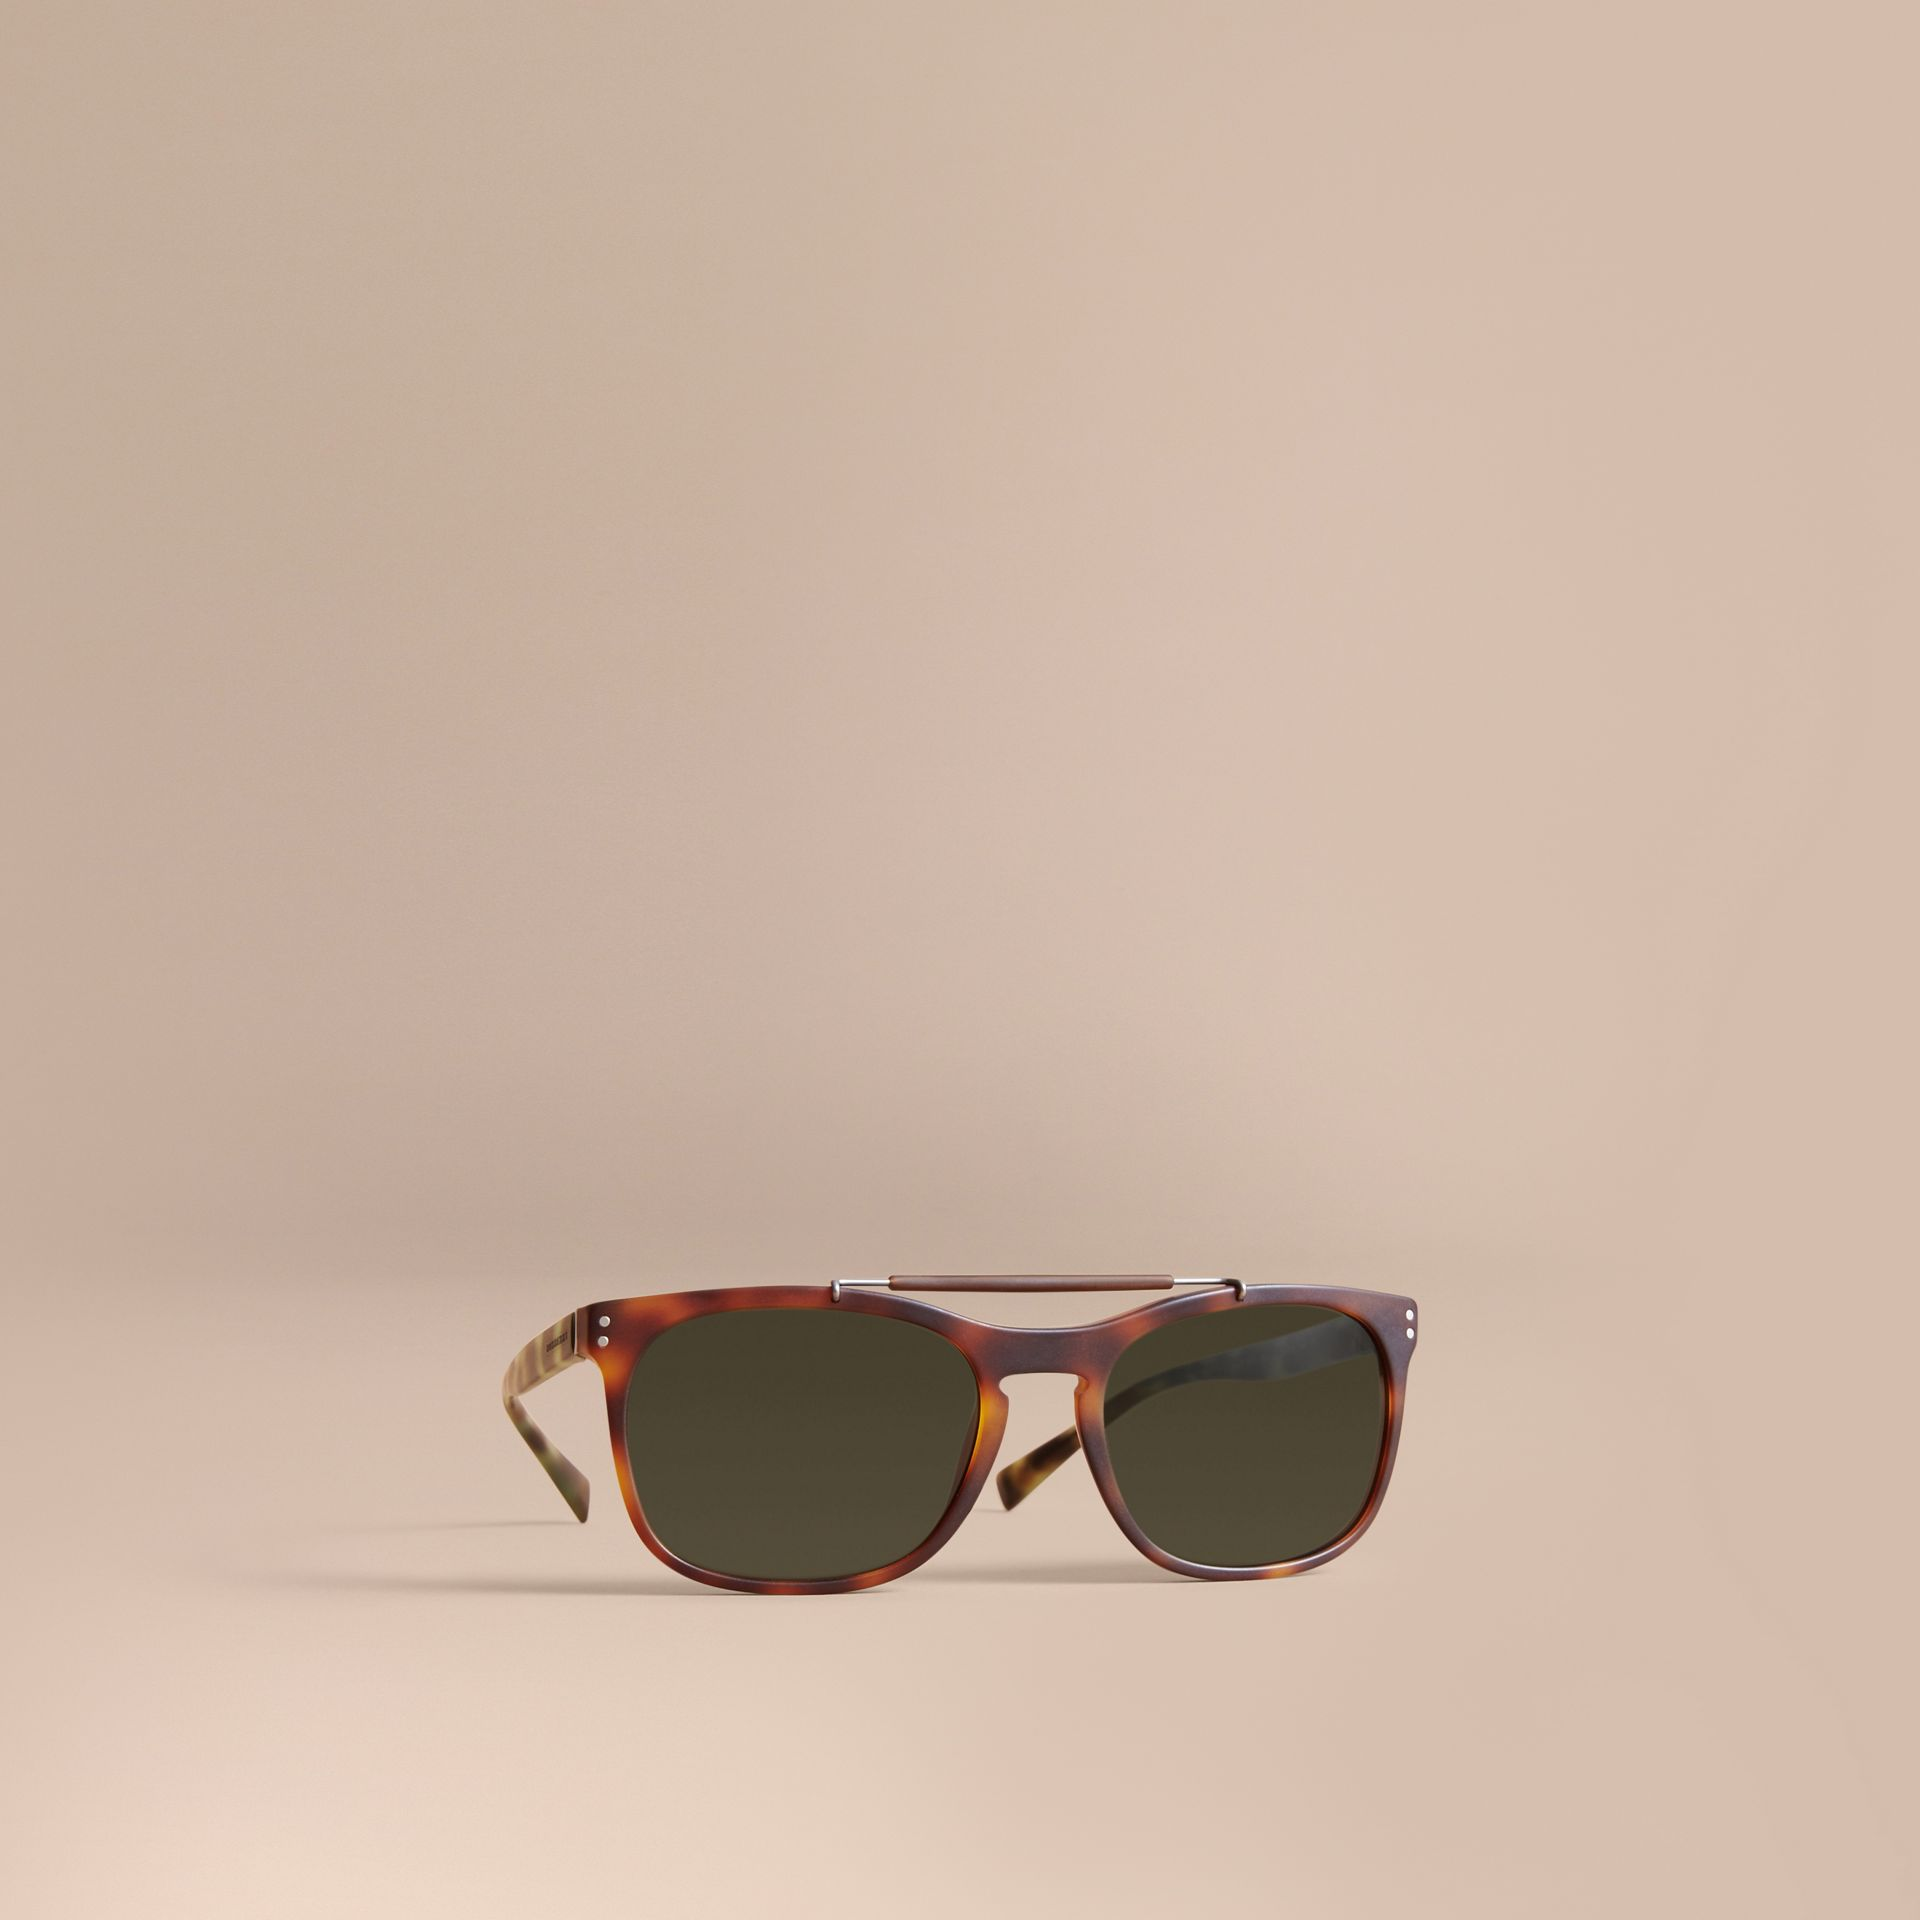 Top Bar Square Frame Sunglasses in Brown - Men | Burberry Hong Kong - gallery image 1